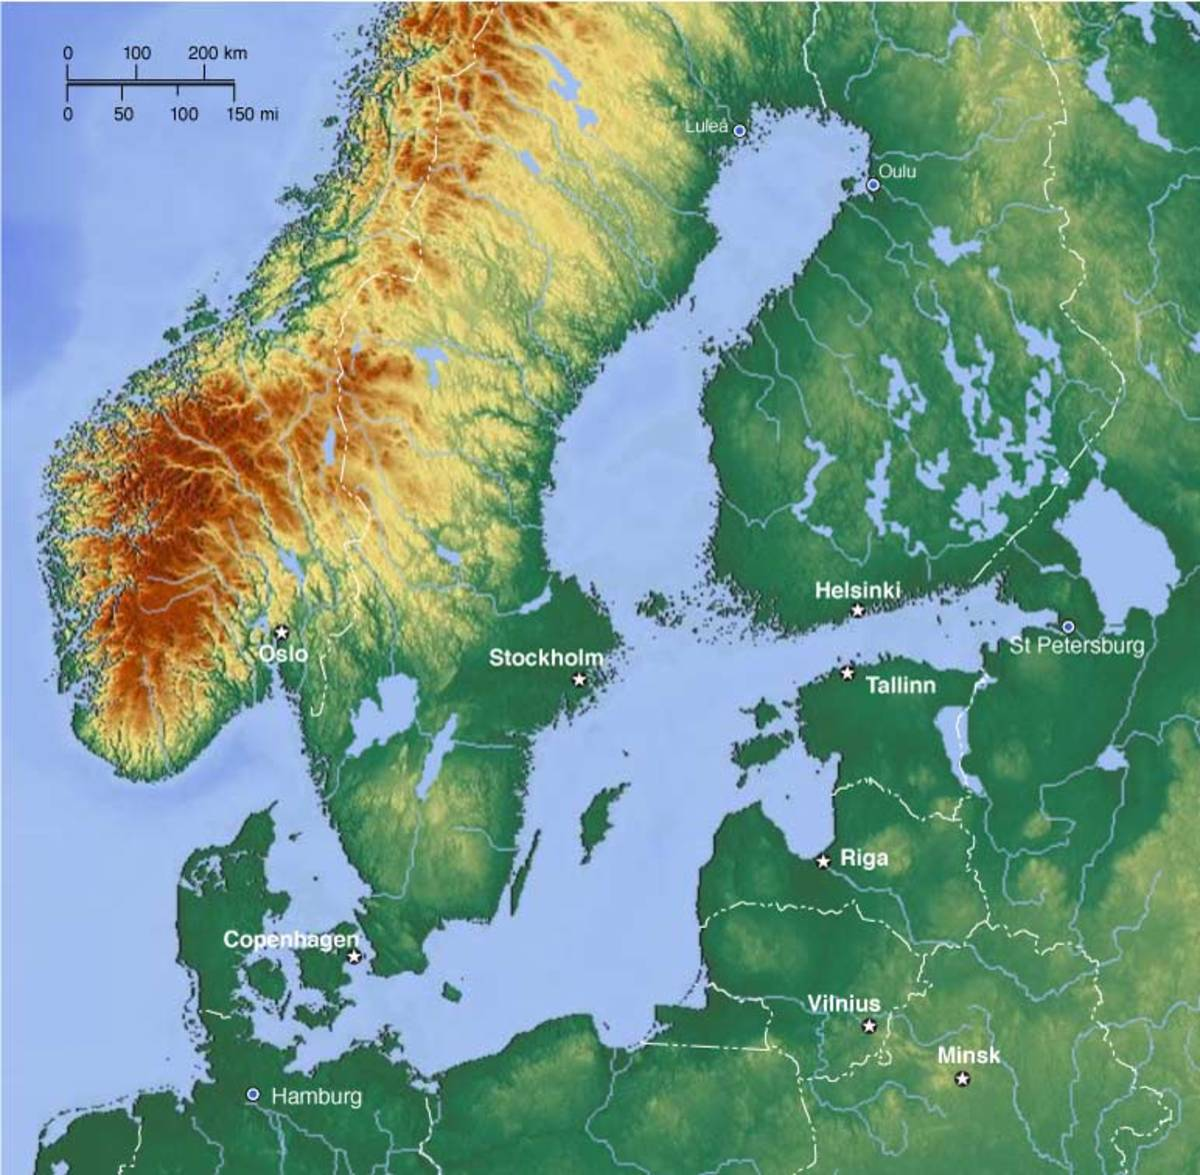 Topographic map of the Eastern Sea (Baltic) and surrounding territories